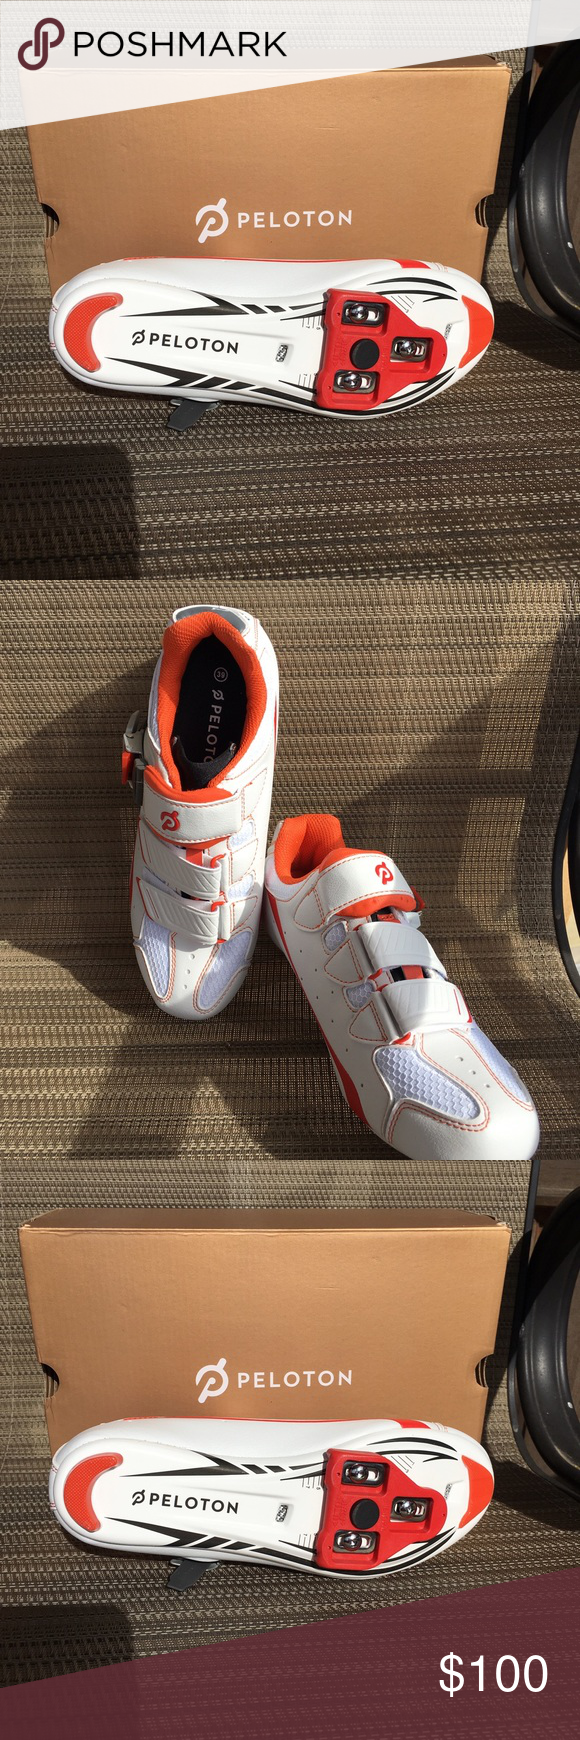 Peloton Cycling Shoes Brand New Cycling Shoes From Peloton In